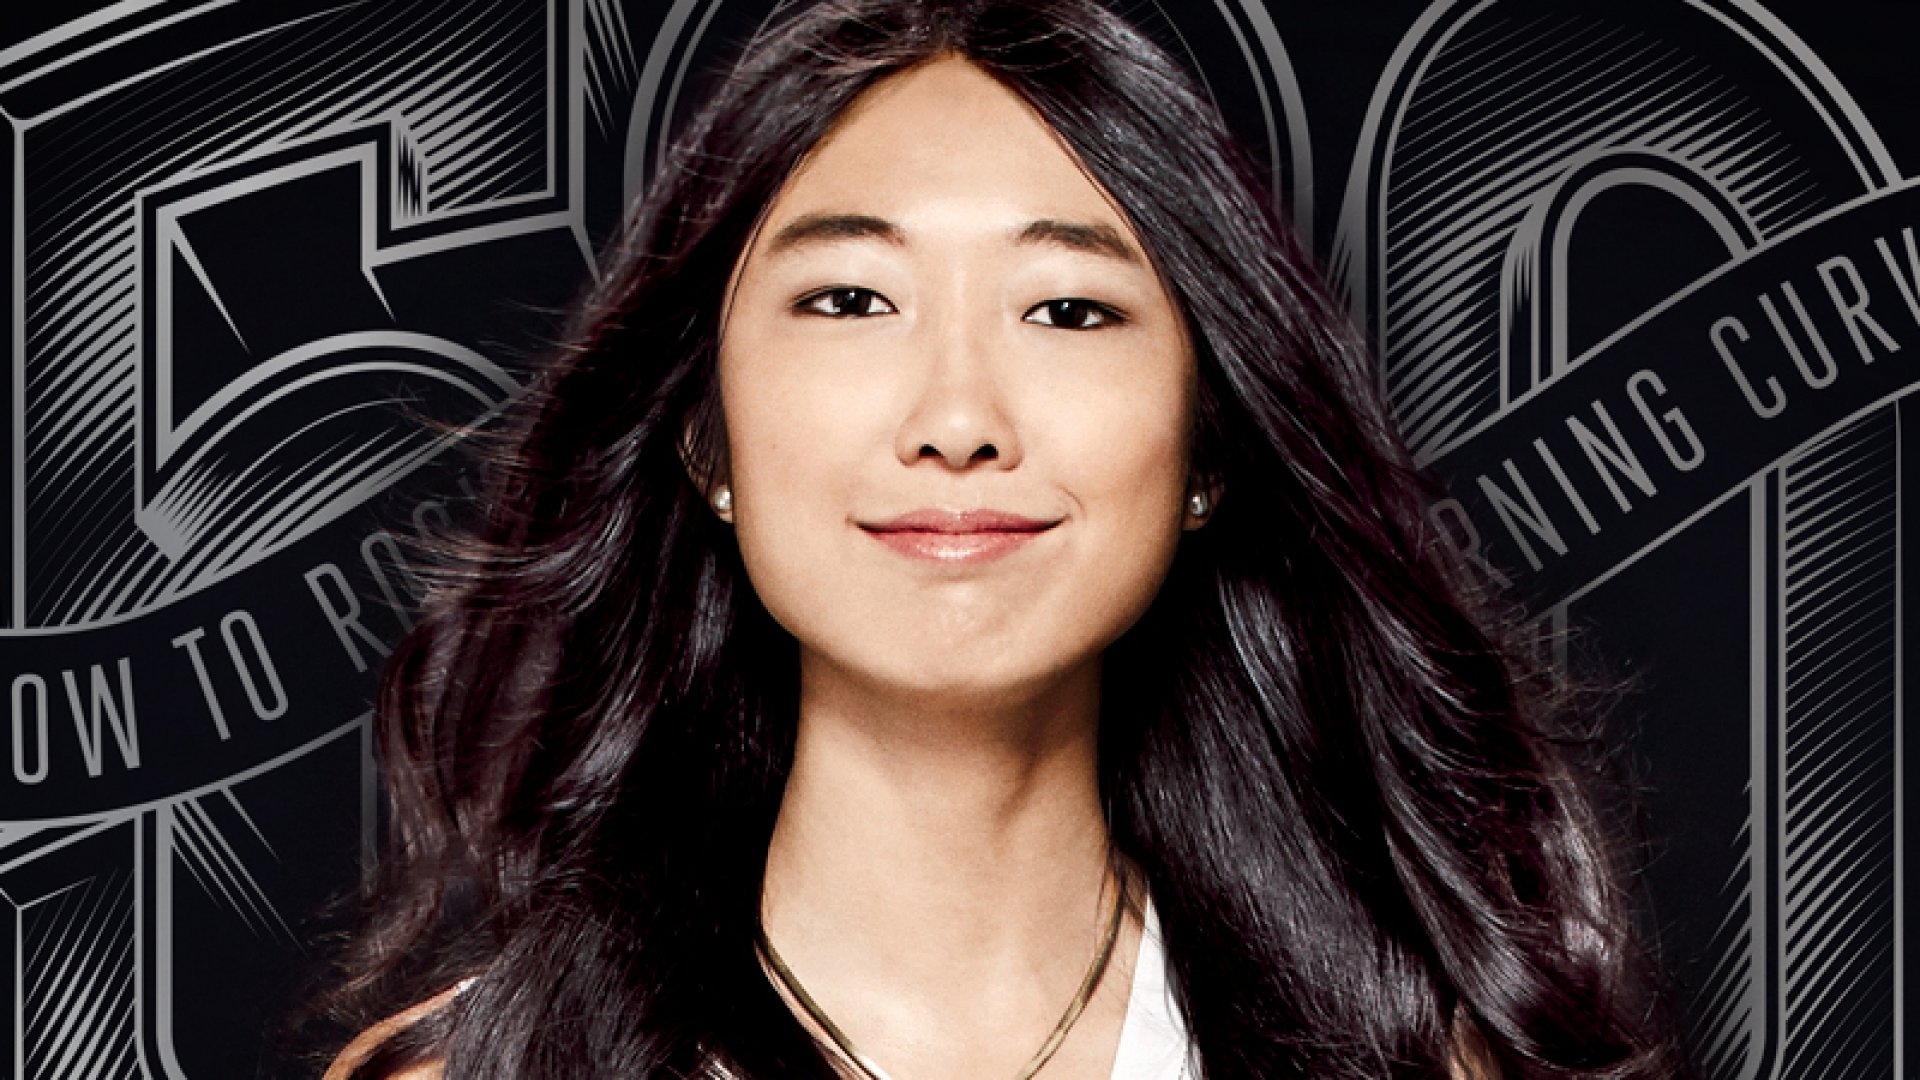 Jessica Mah, 25, reinvented her financial software firm, inDinero, to create a stunning growth rate of 2,685.6% over the past three years.